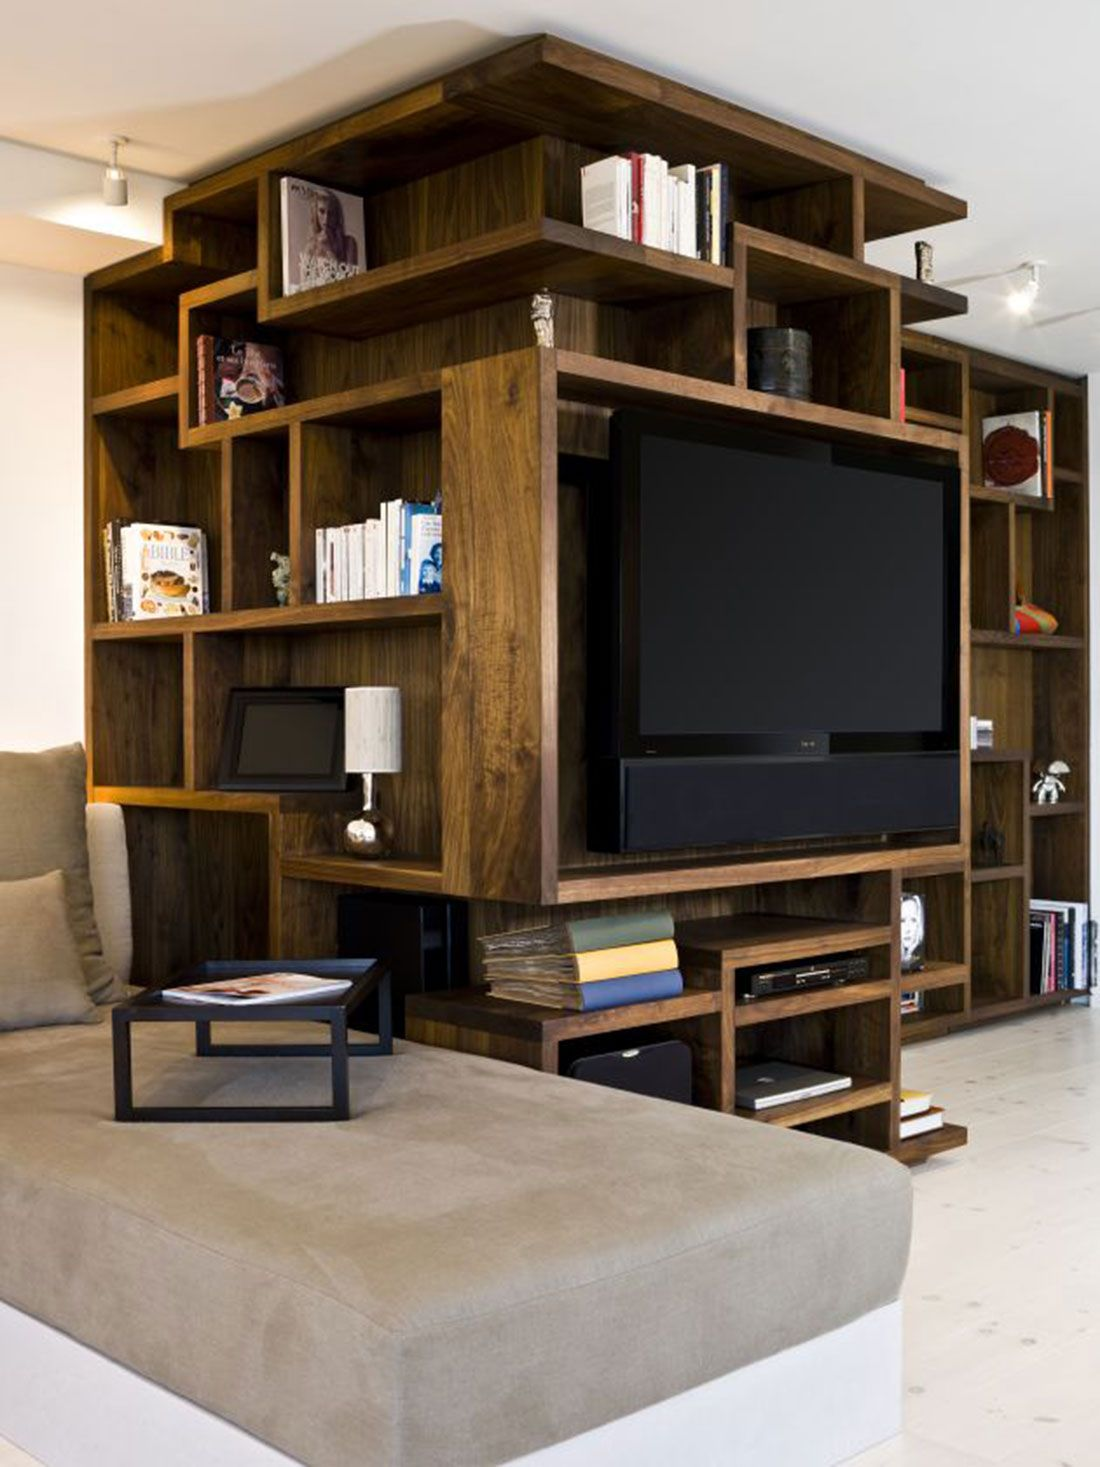 bookshelves bookshelf design book shelves bookcases tv wall design